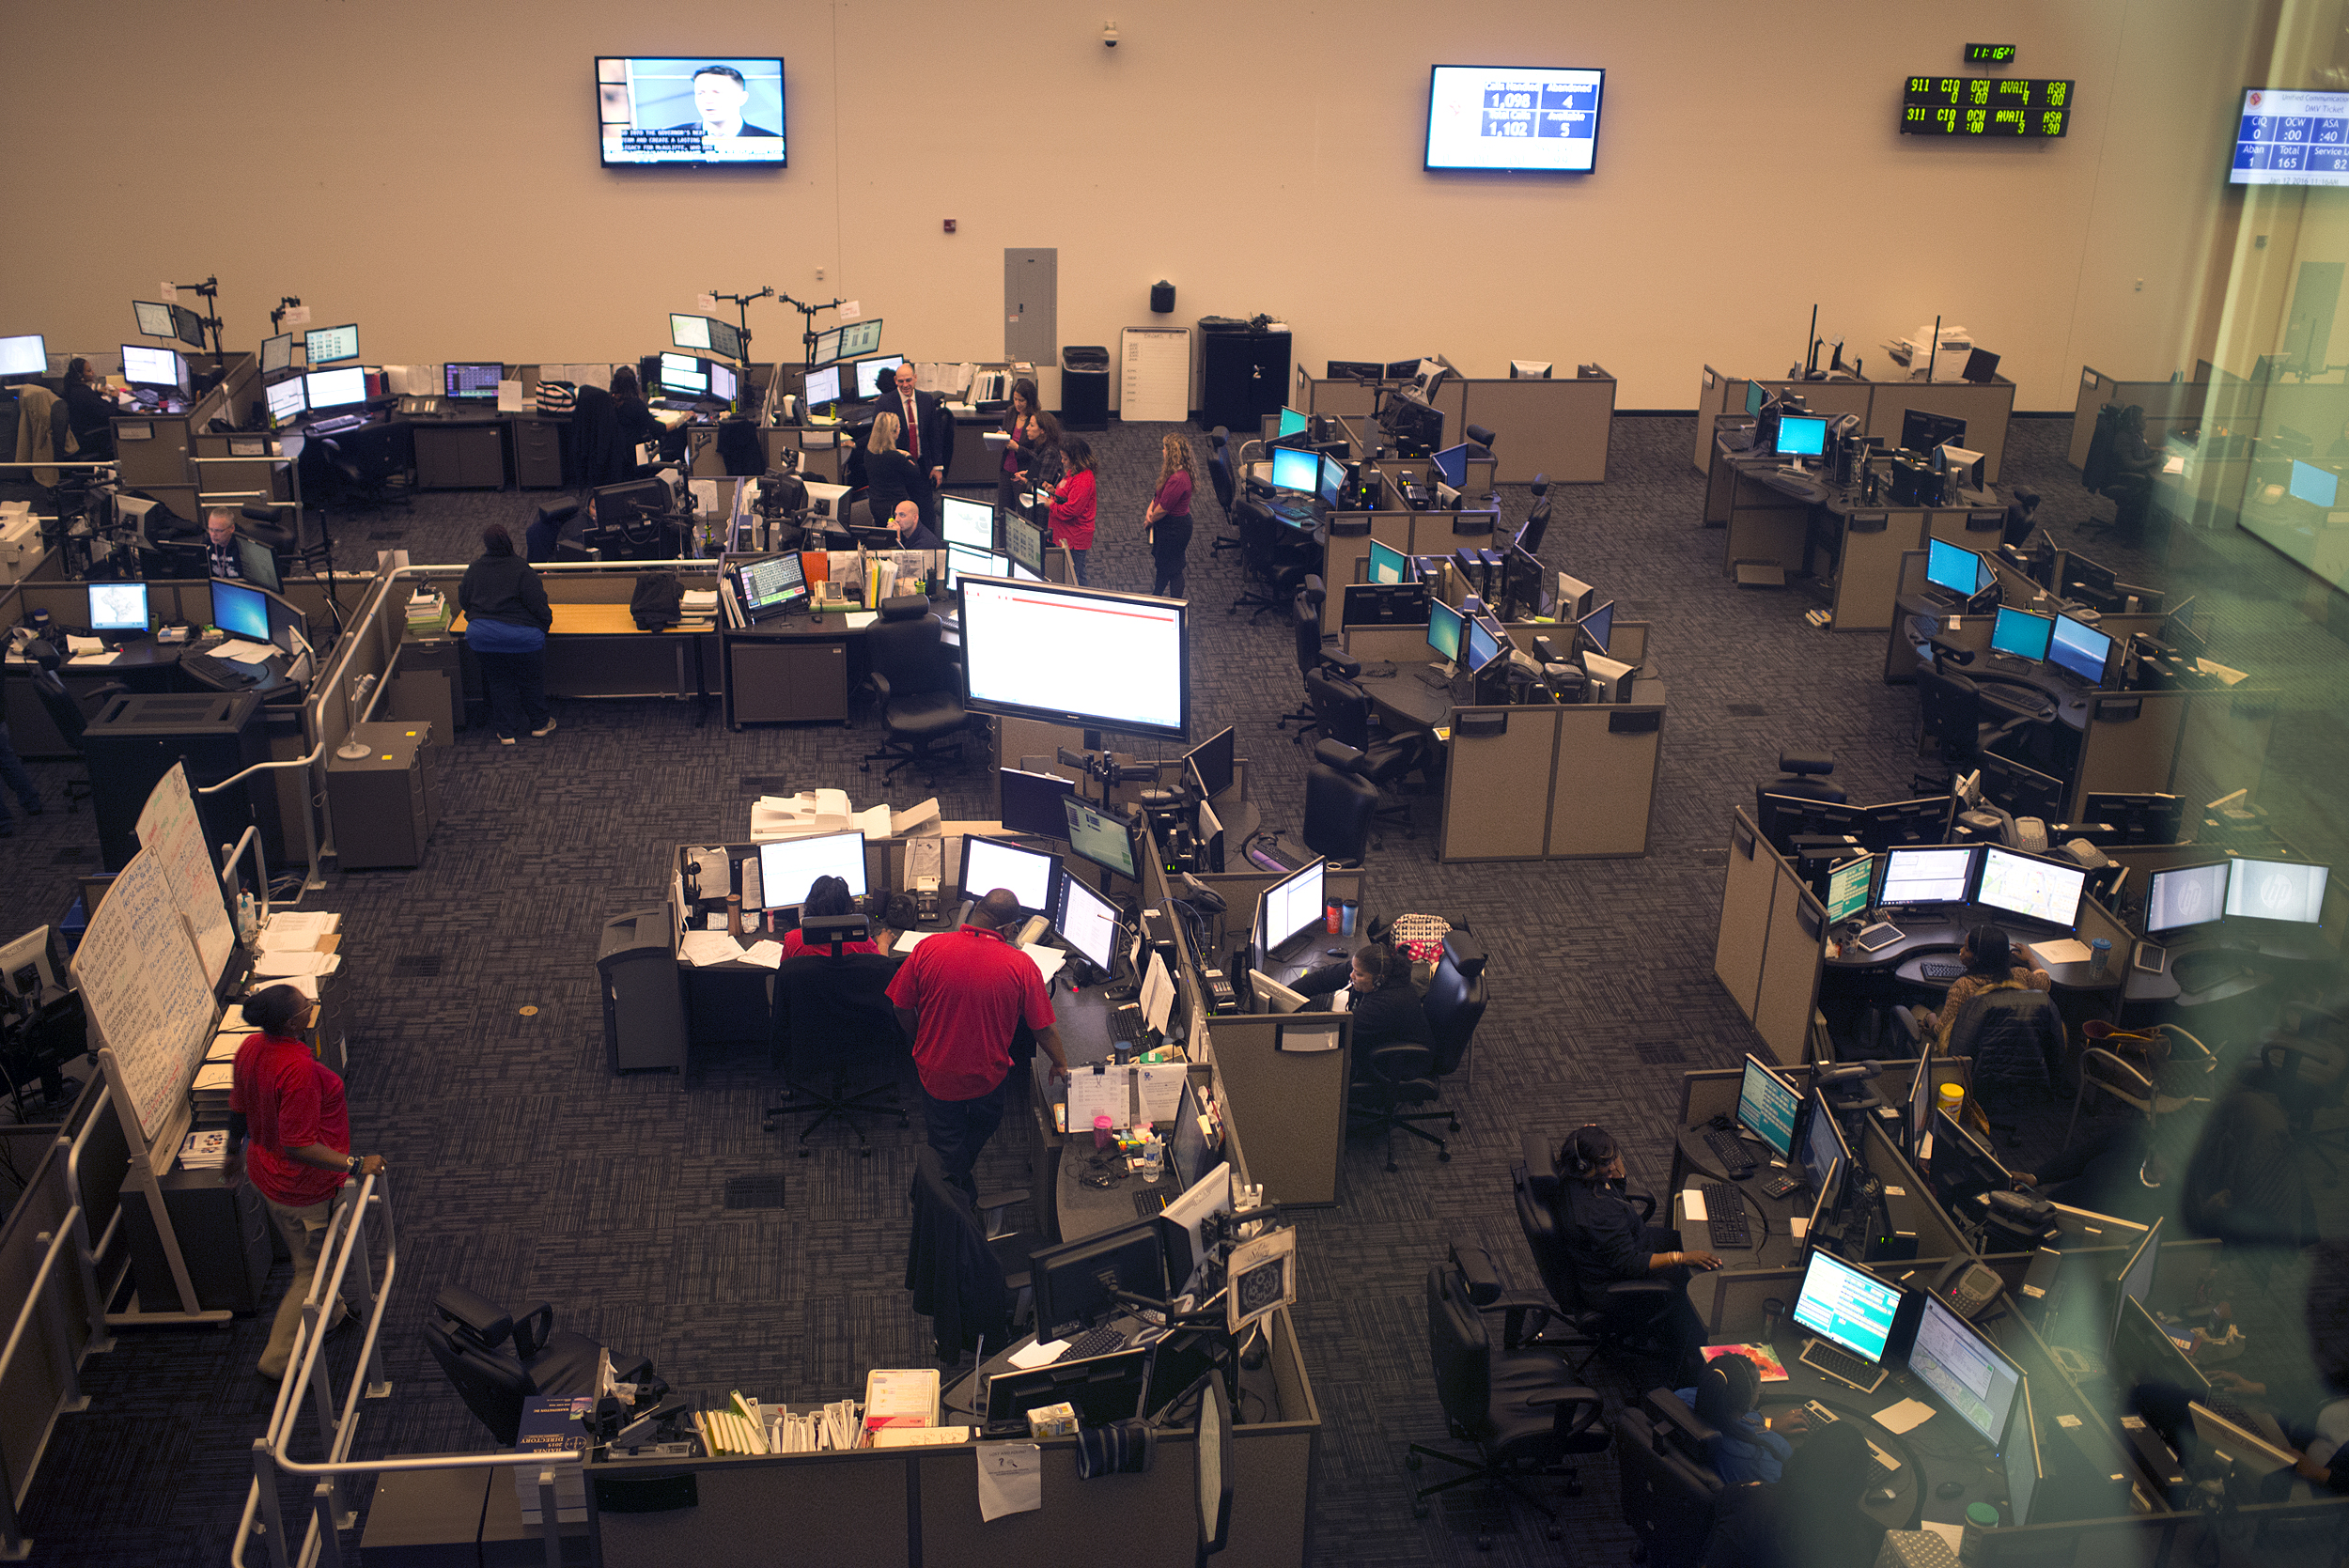 Hackers Have Taken Down Dozens Of 911 Centers Why Is It So Hard To Stop Them